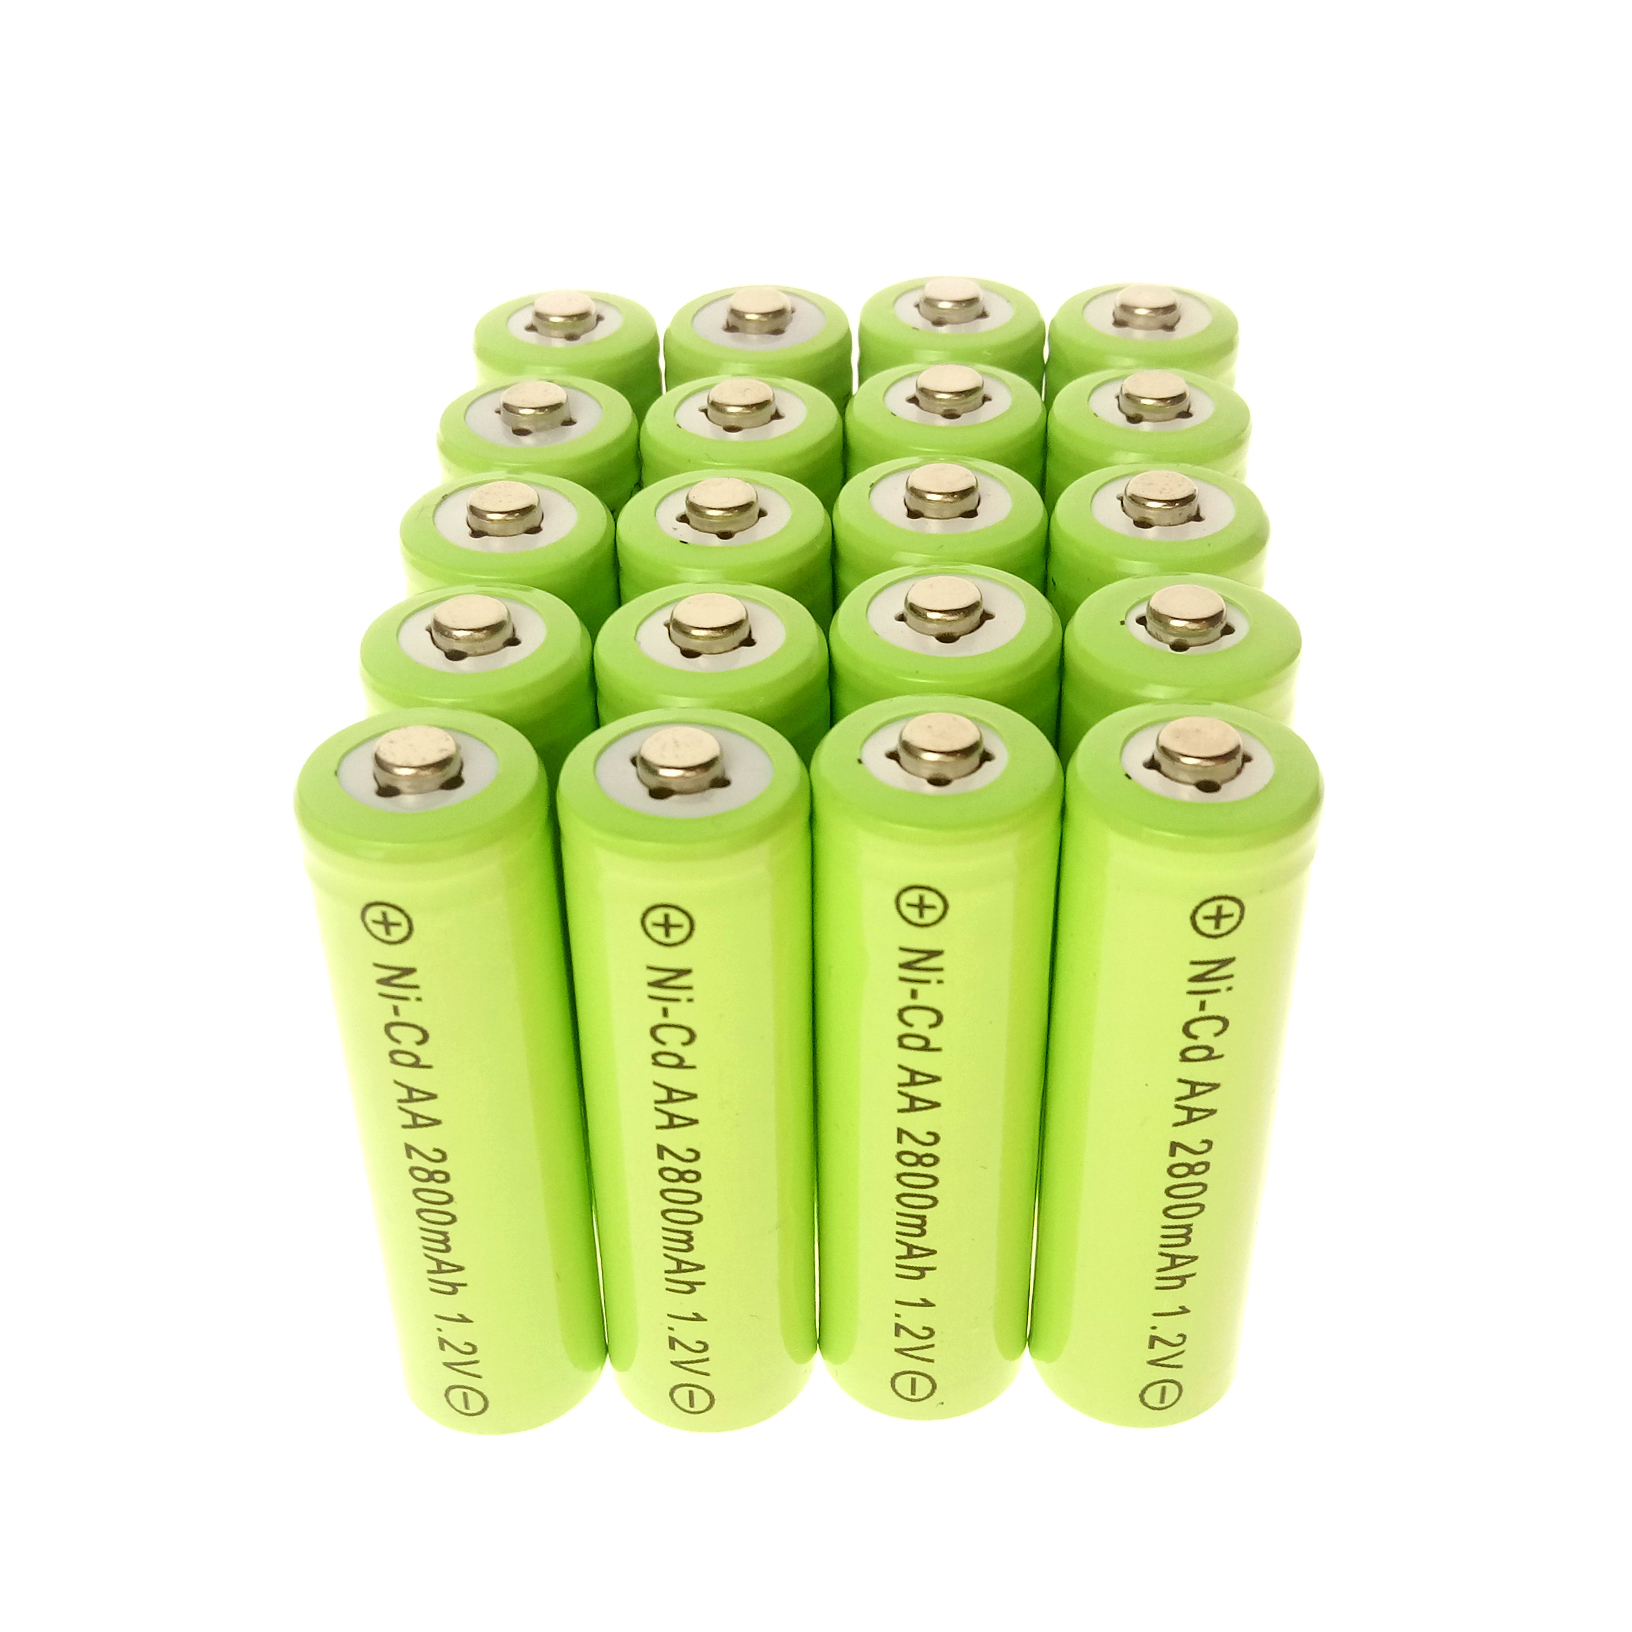 2-24pcs 1.2V NiCd AA 2800mAh Rechargeable Durable Battery For Flashlight Green